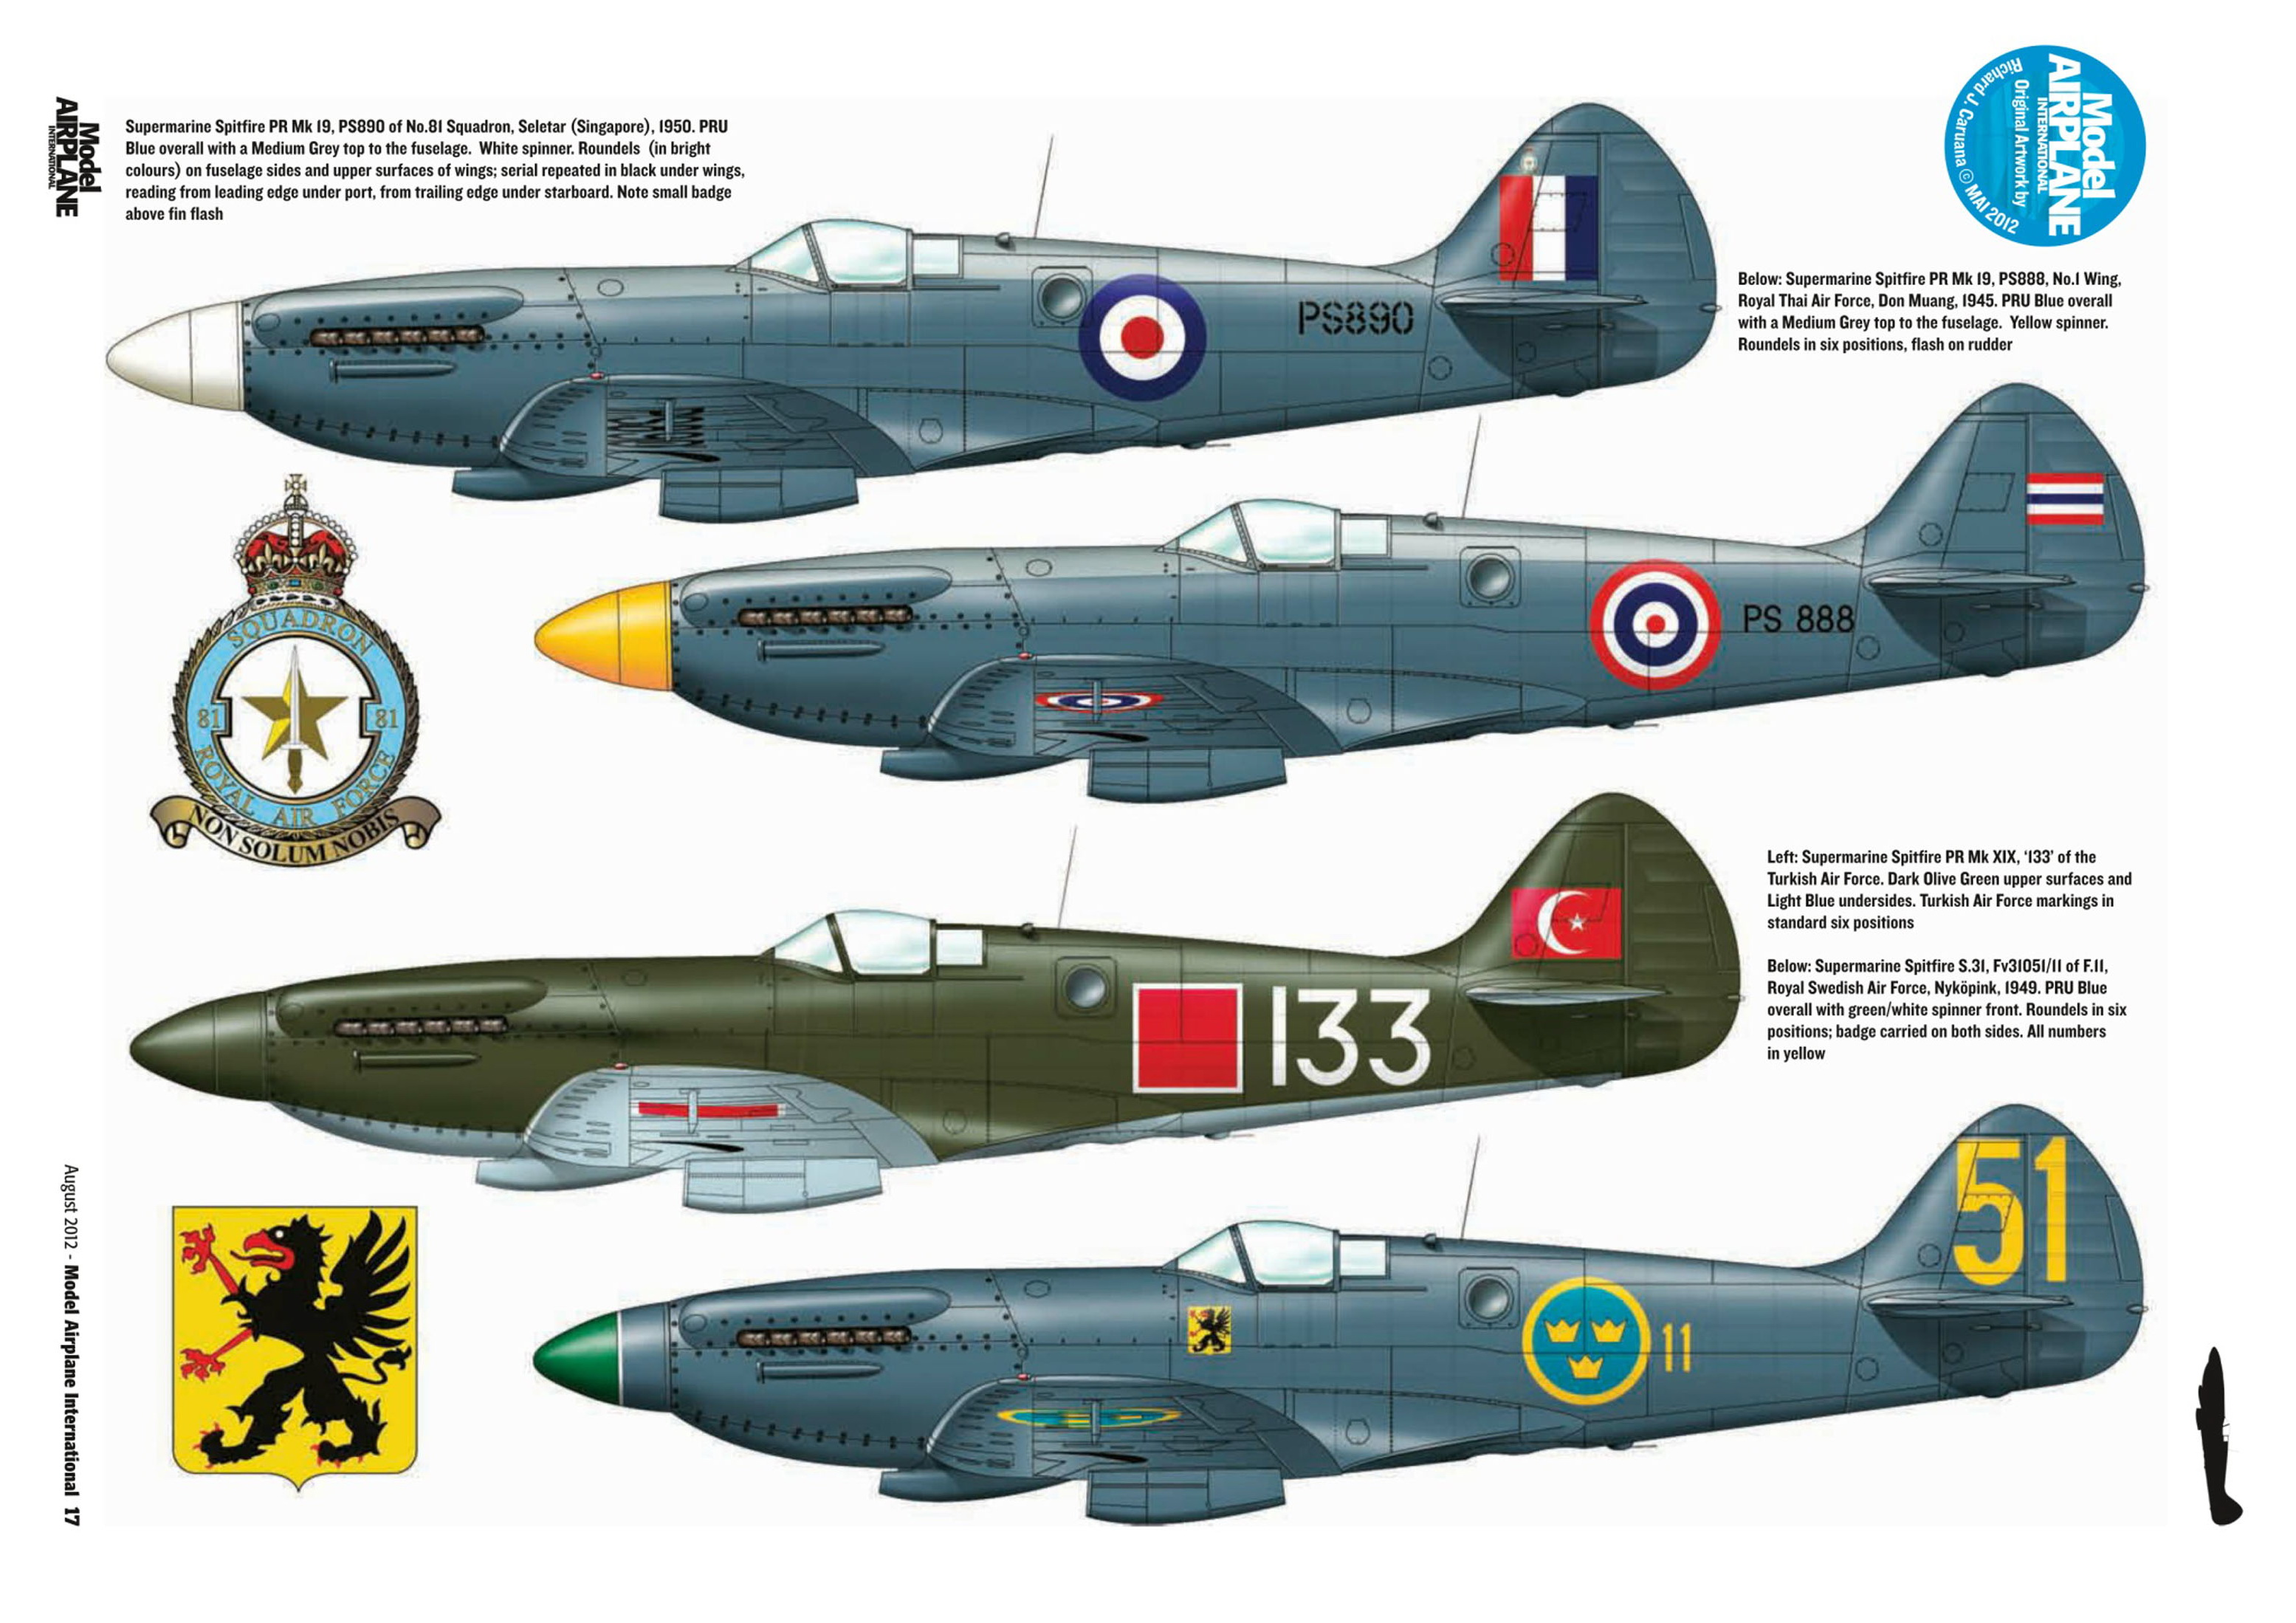 Supermarine Spitfire profiles by Model Airplane Int 085 2012 08 Page 17